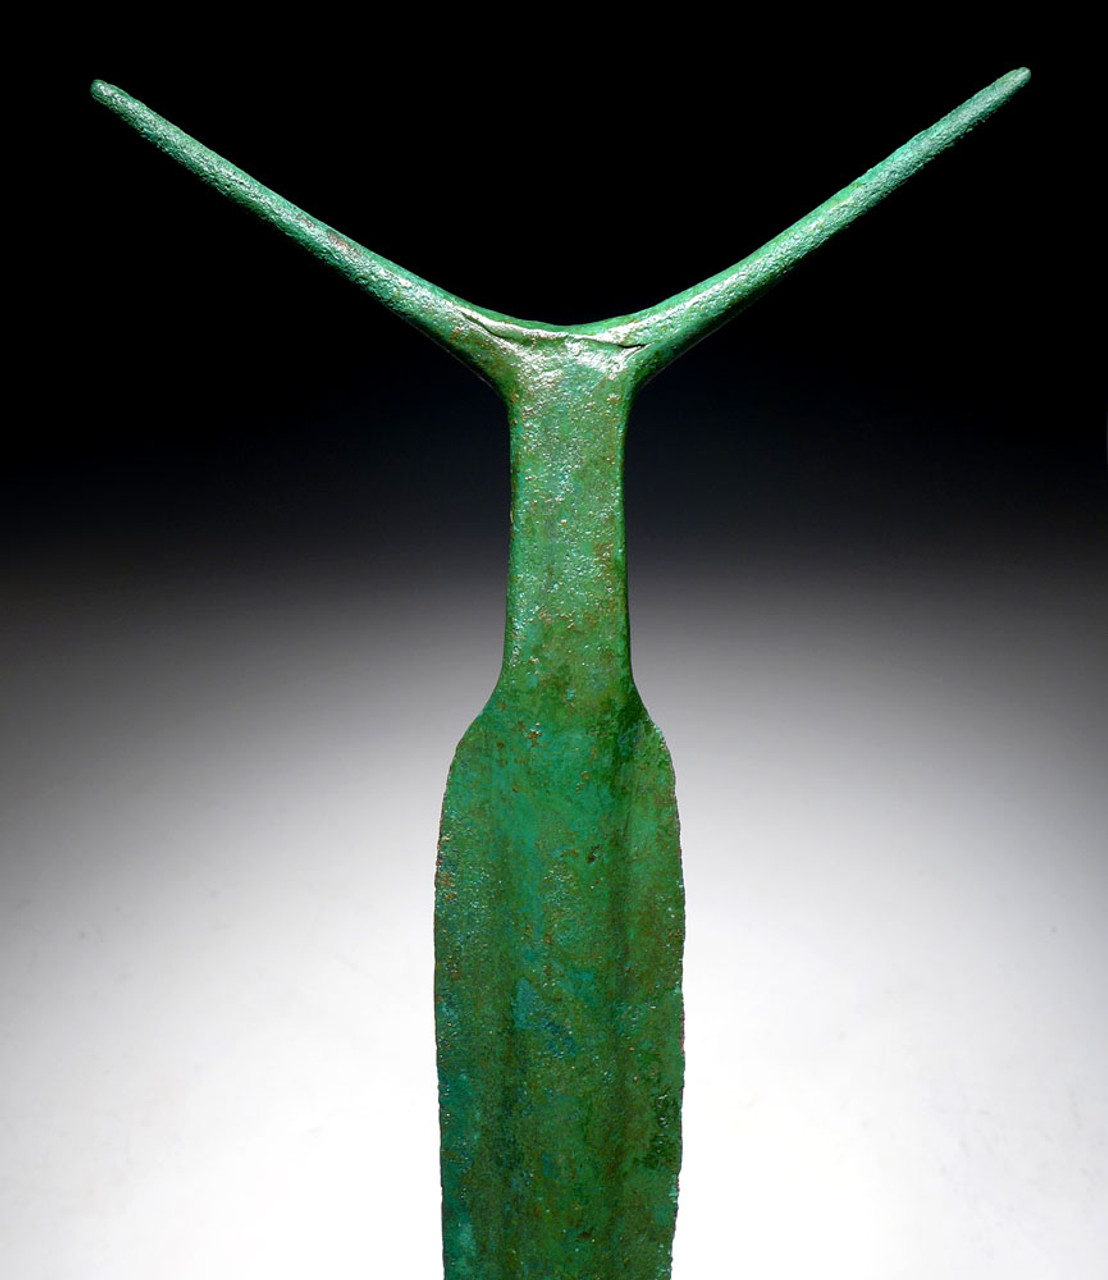 FINEST INVESTMENT-CLASS ANCIENT COPPER ANTENNA SWORD FROM THE HARAPPAN CIVILIZATION  *LUR191